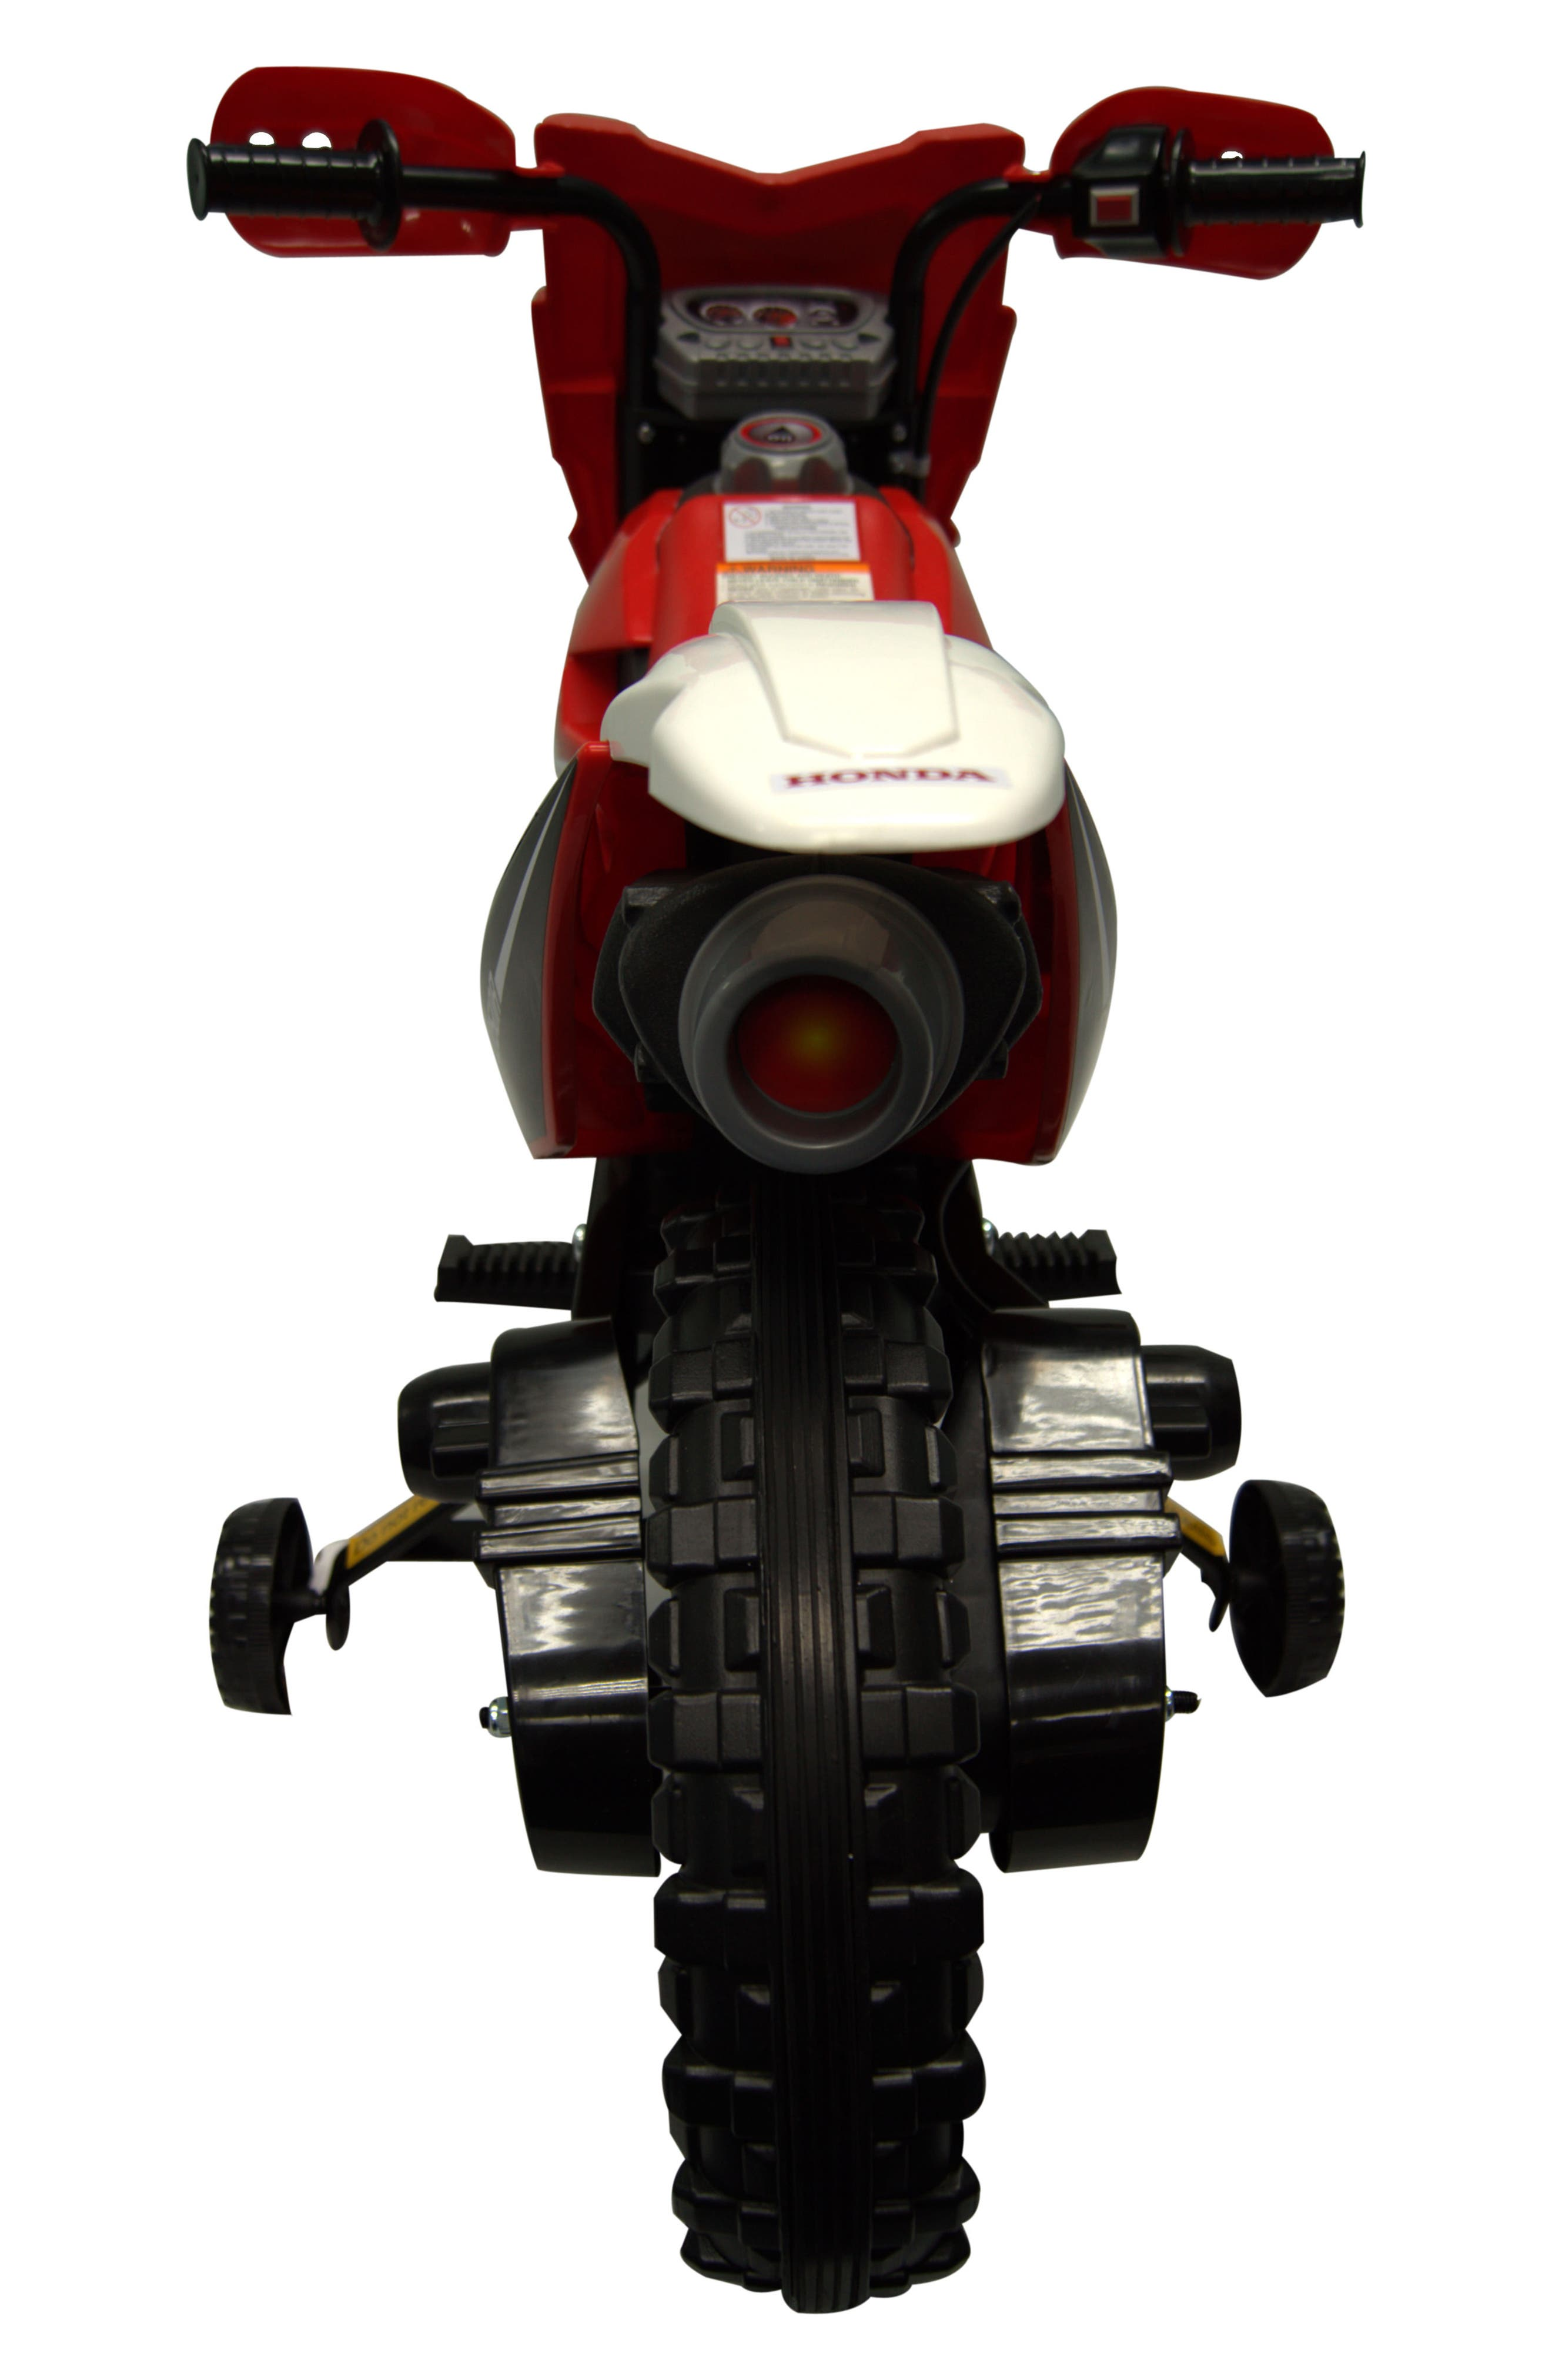 Honda Dirt Bike Ride-On Toy Motorcycle,                             Alternate thumbnail 2, color,                             RED